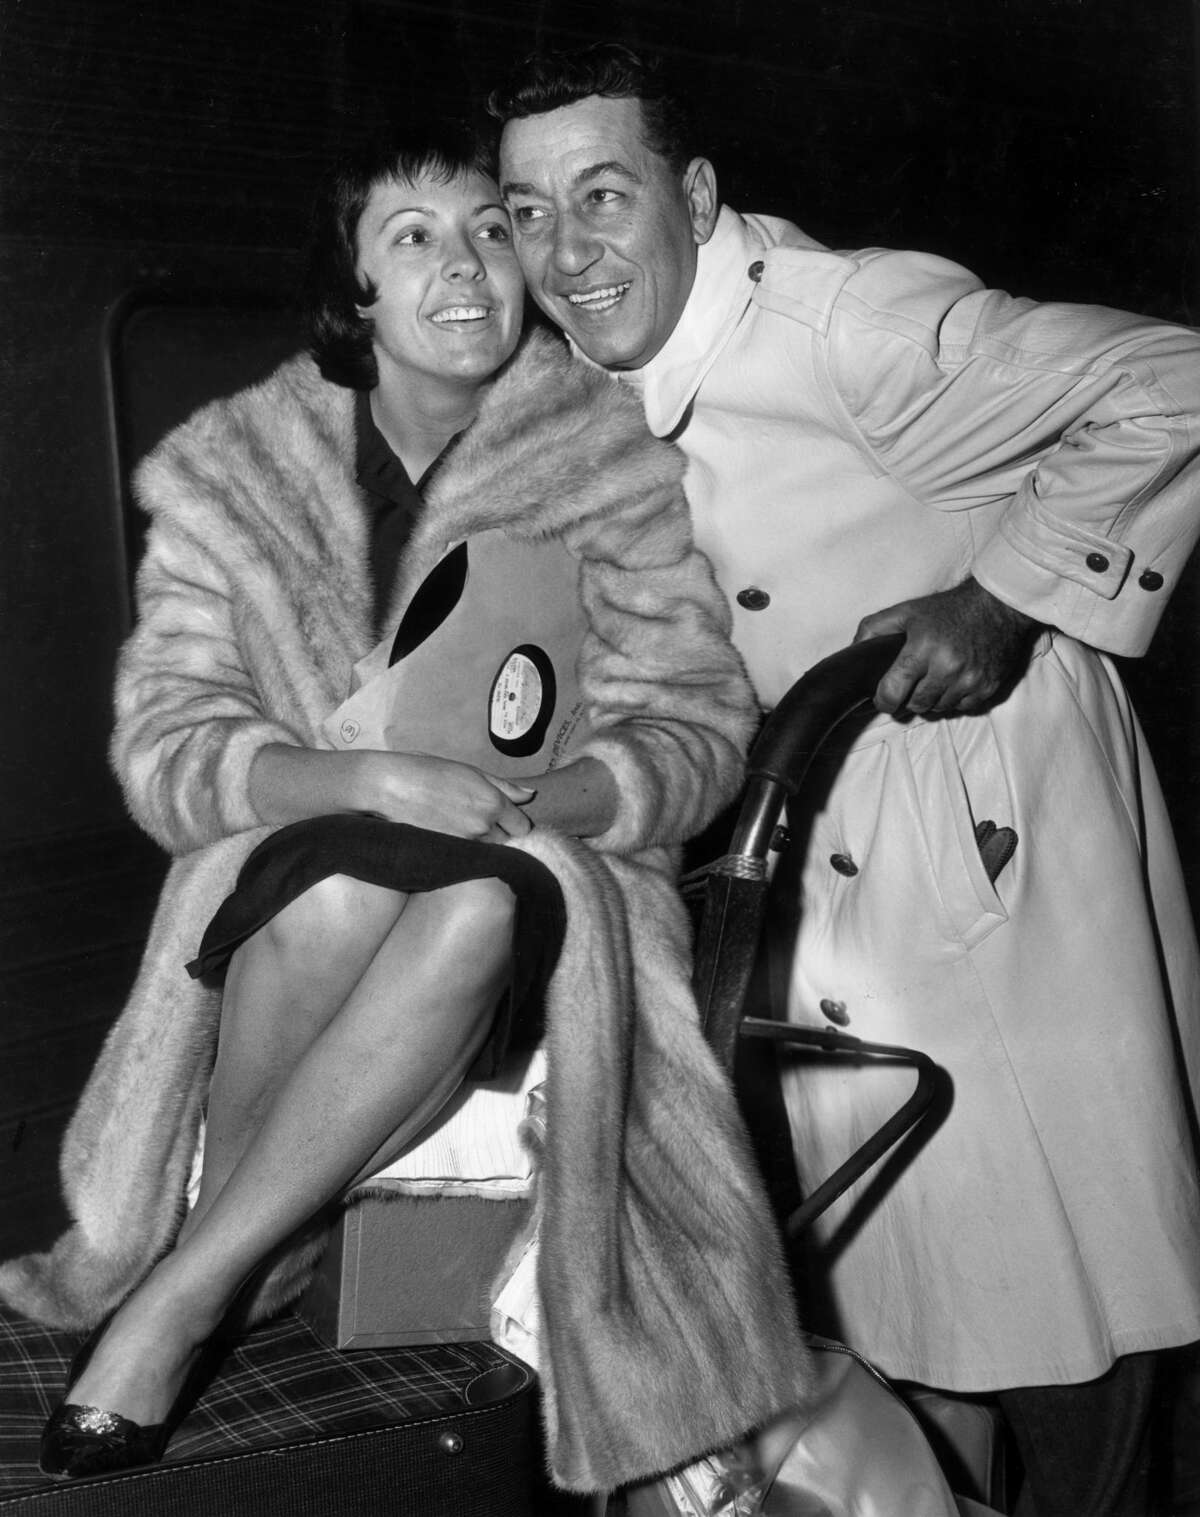 circa 1945: American jazz trumpeter and bandleader Louis Prima (1911 - 1978) smiles as he pushes a luggage cart carrying his wife, American singer Keely Smith. She wears a long fur coat and holds a copy of her hit single, 'I Wish You Love.'